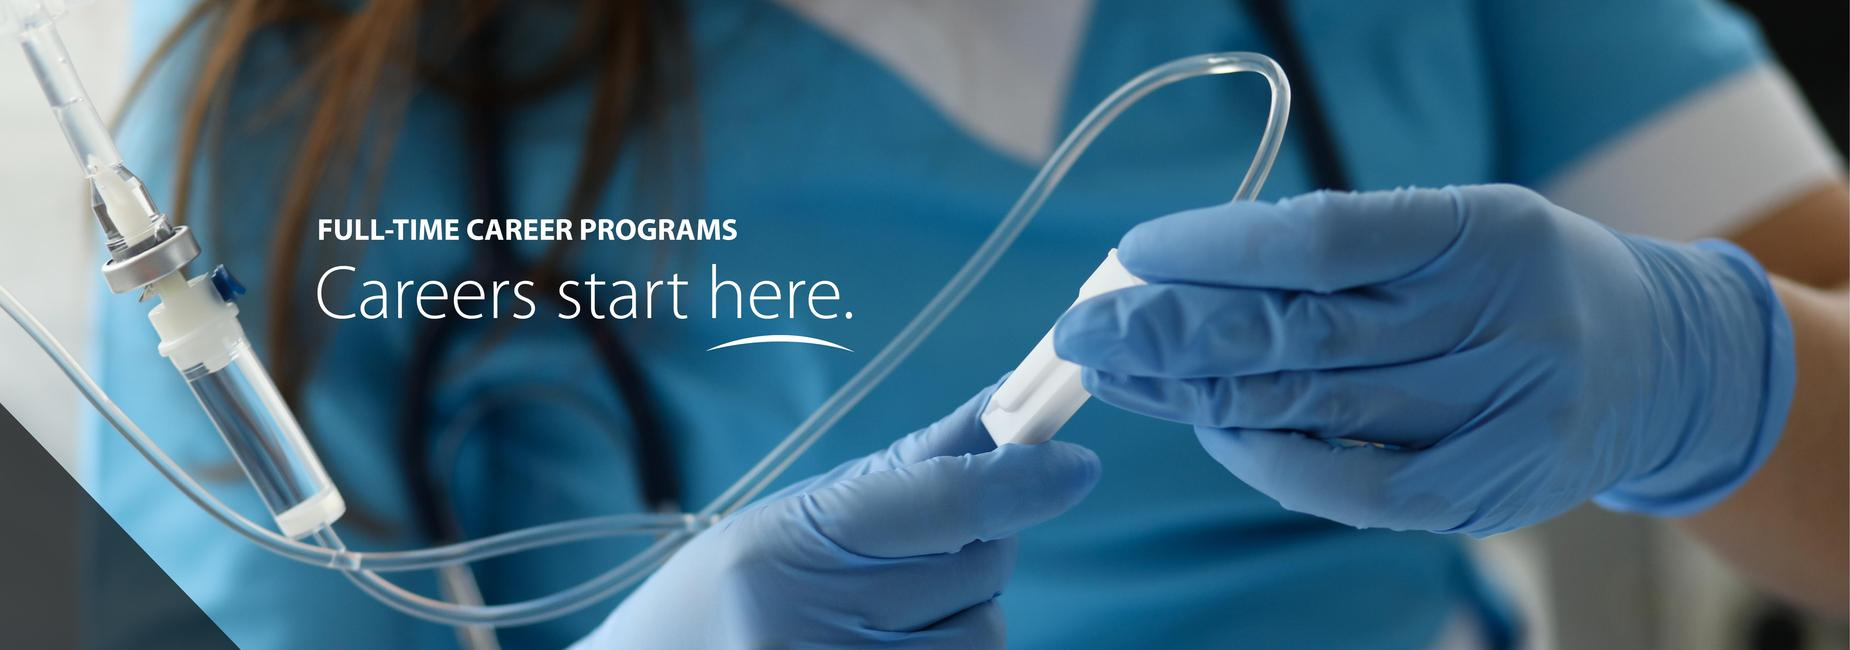 Image of medical worker with text that says Full-Time Career Programs, Careers start here.